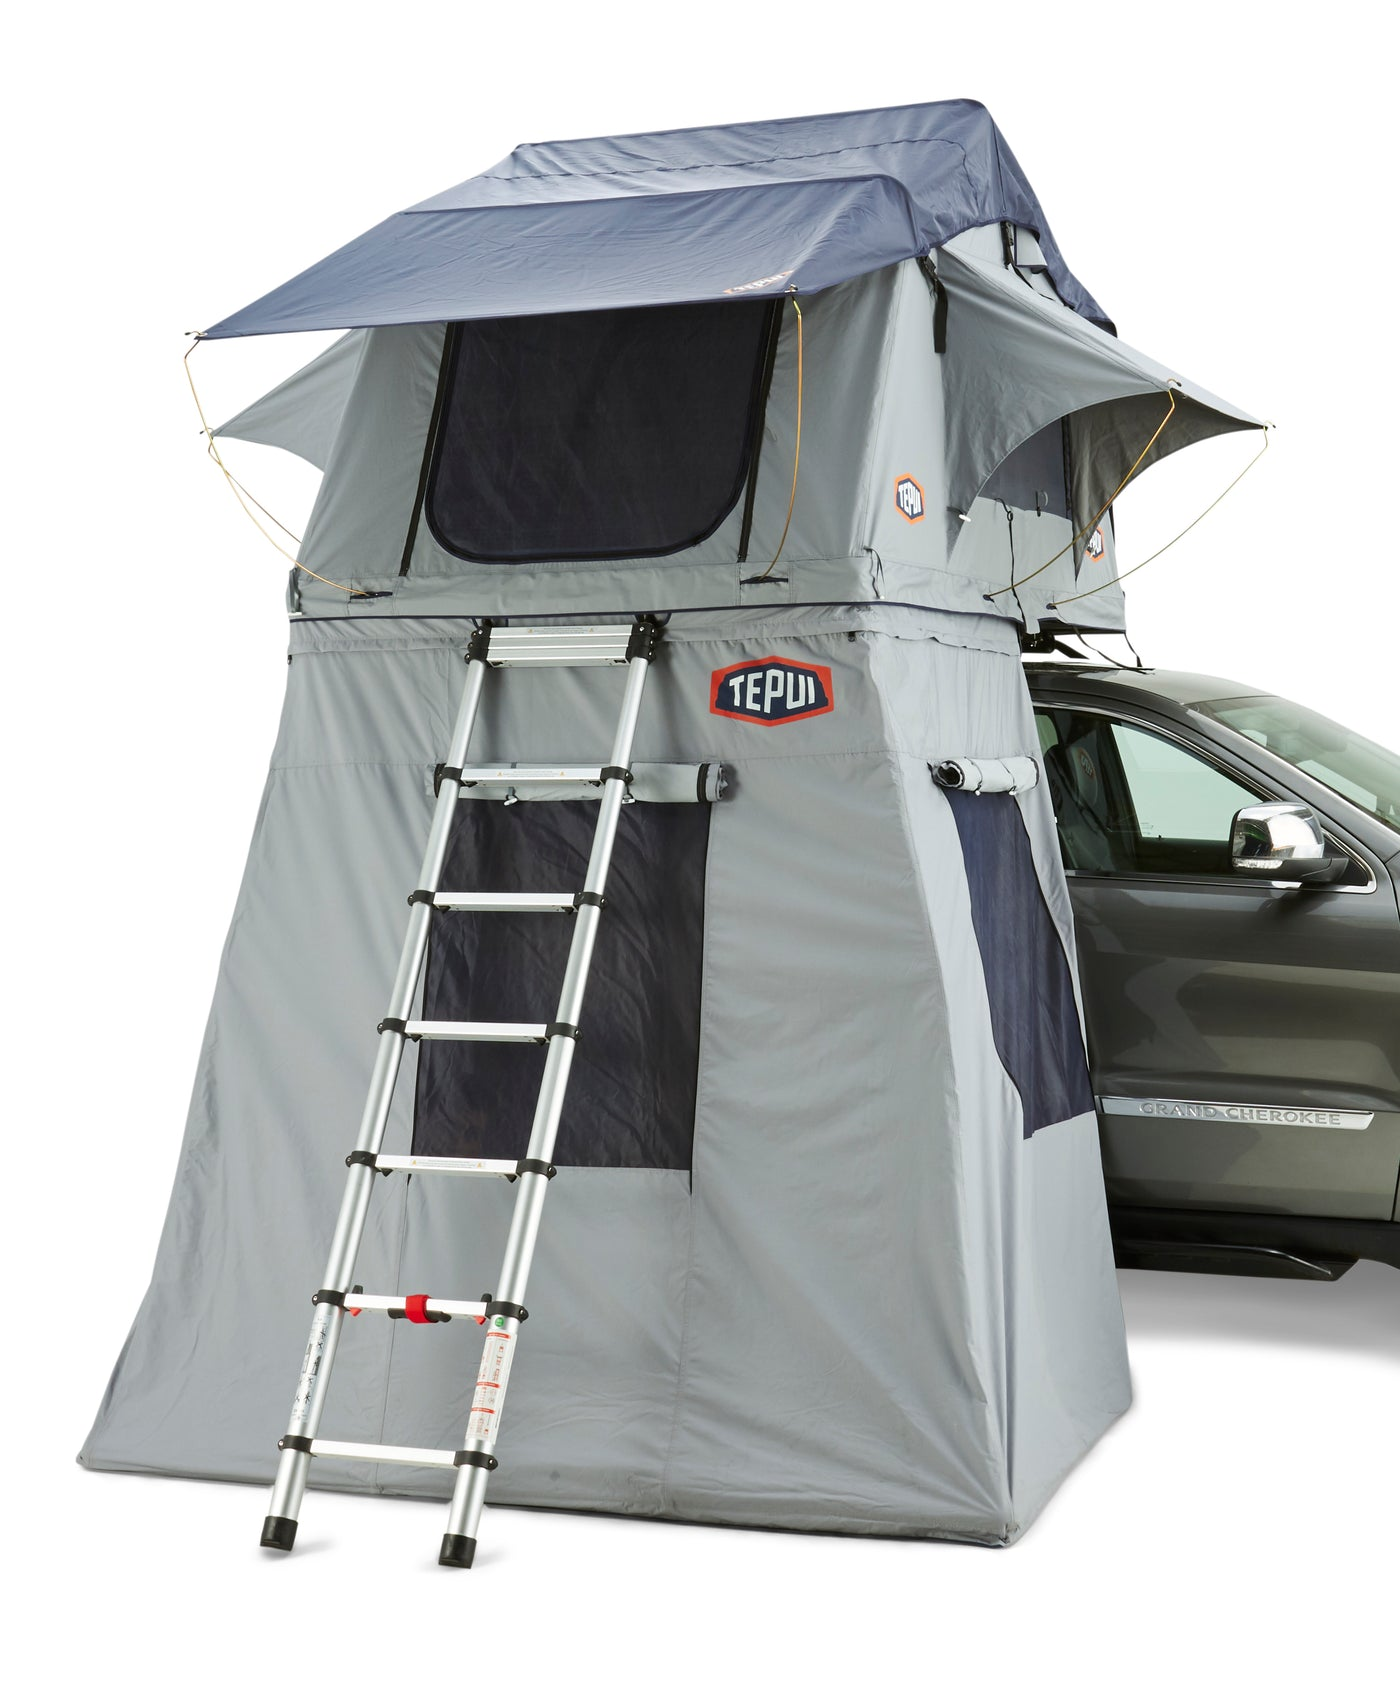 Telescoping Ladder Telescoping Ladder Telescoping Ladder Telescoping Ladder  sc 1 st  Tepui Tents & Telescoping Ladder u2013 Tepui Tents | Roof Top Tents for Cars and Trucks